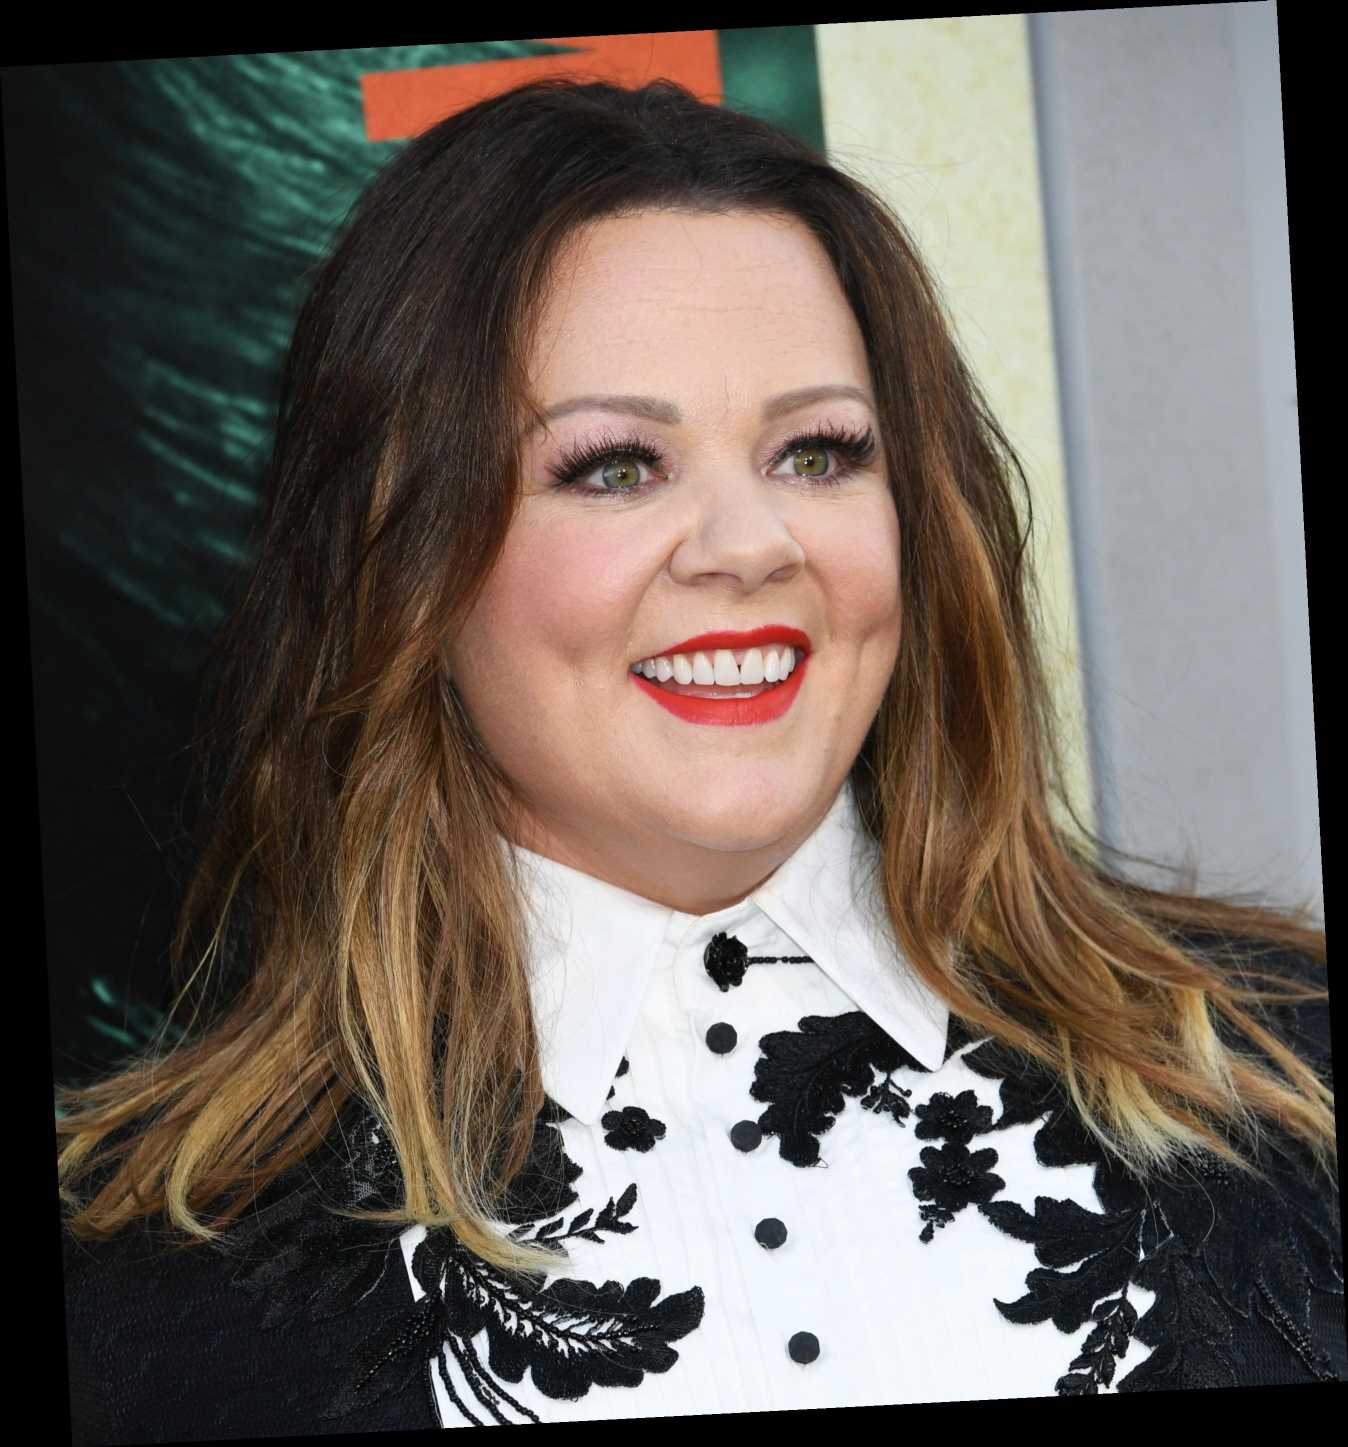 Melissa McCarthy Apologizes After Backing Charity With Anti-Abortion, Anti-LGBTQ Ties